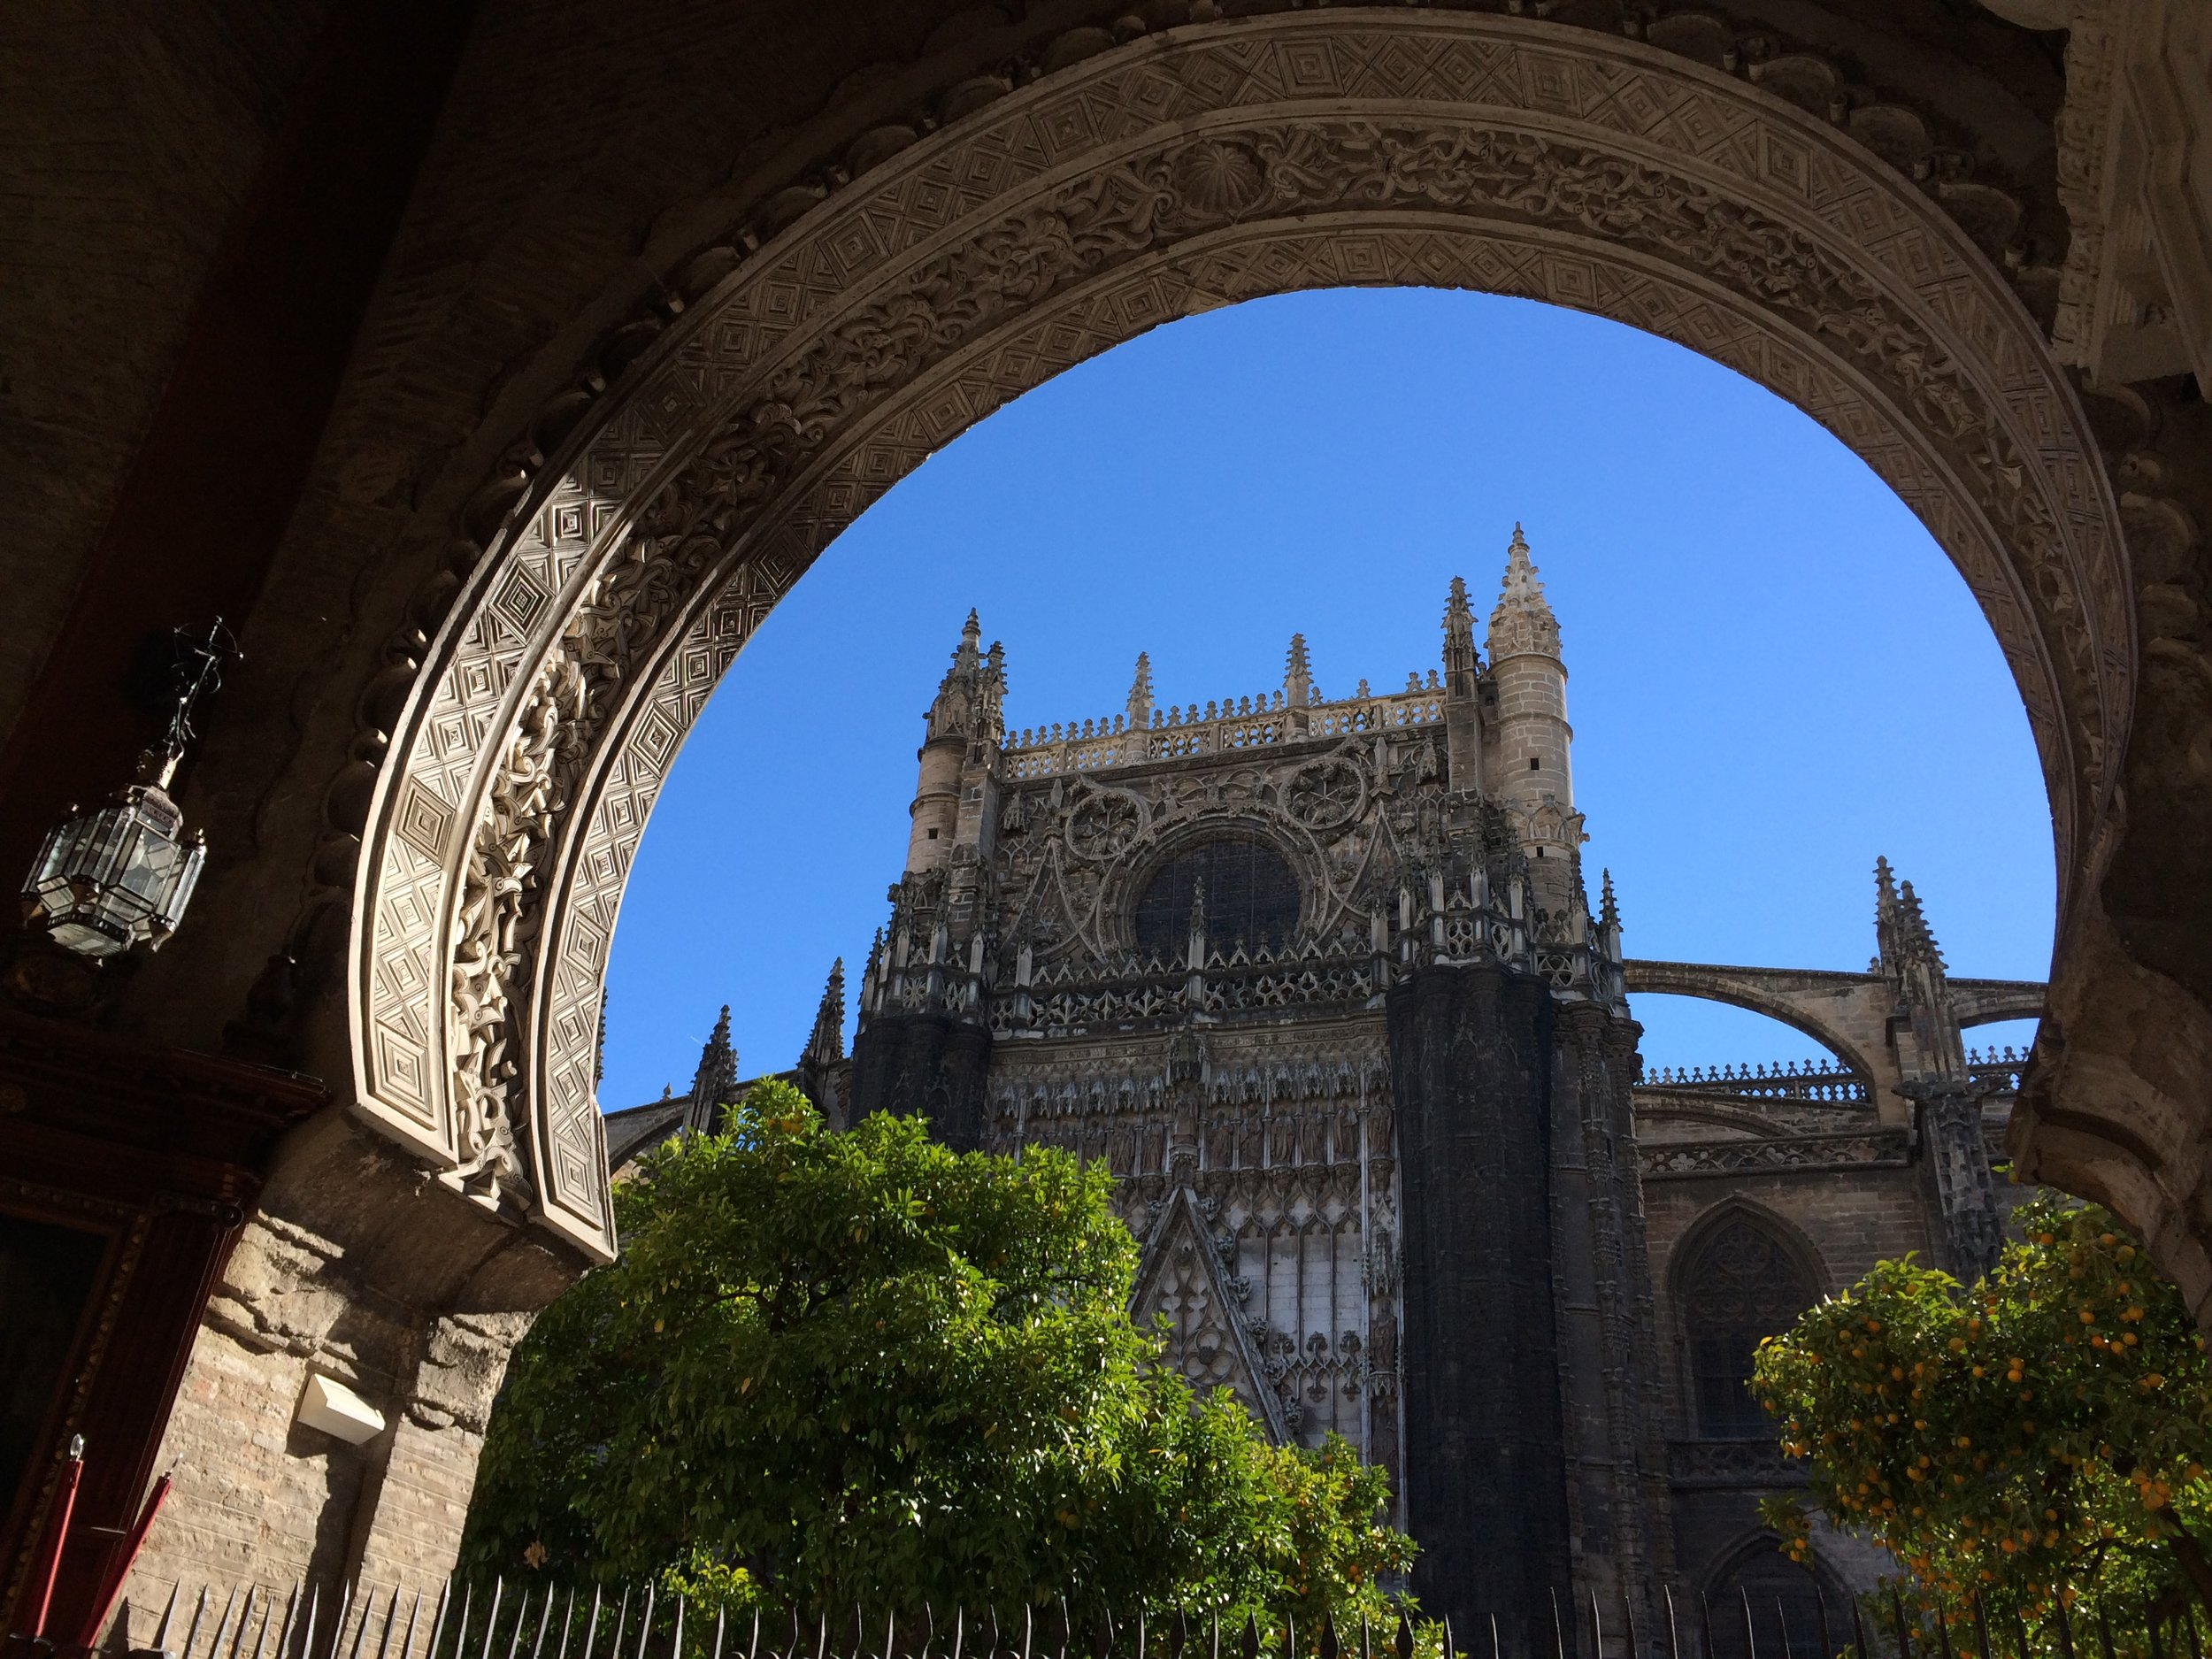 The grand cathedral in Seville, Spain